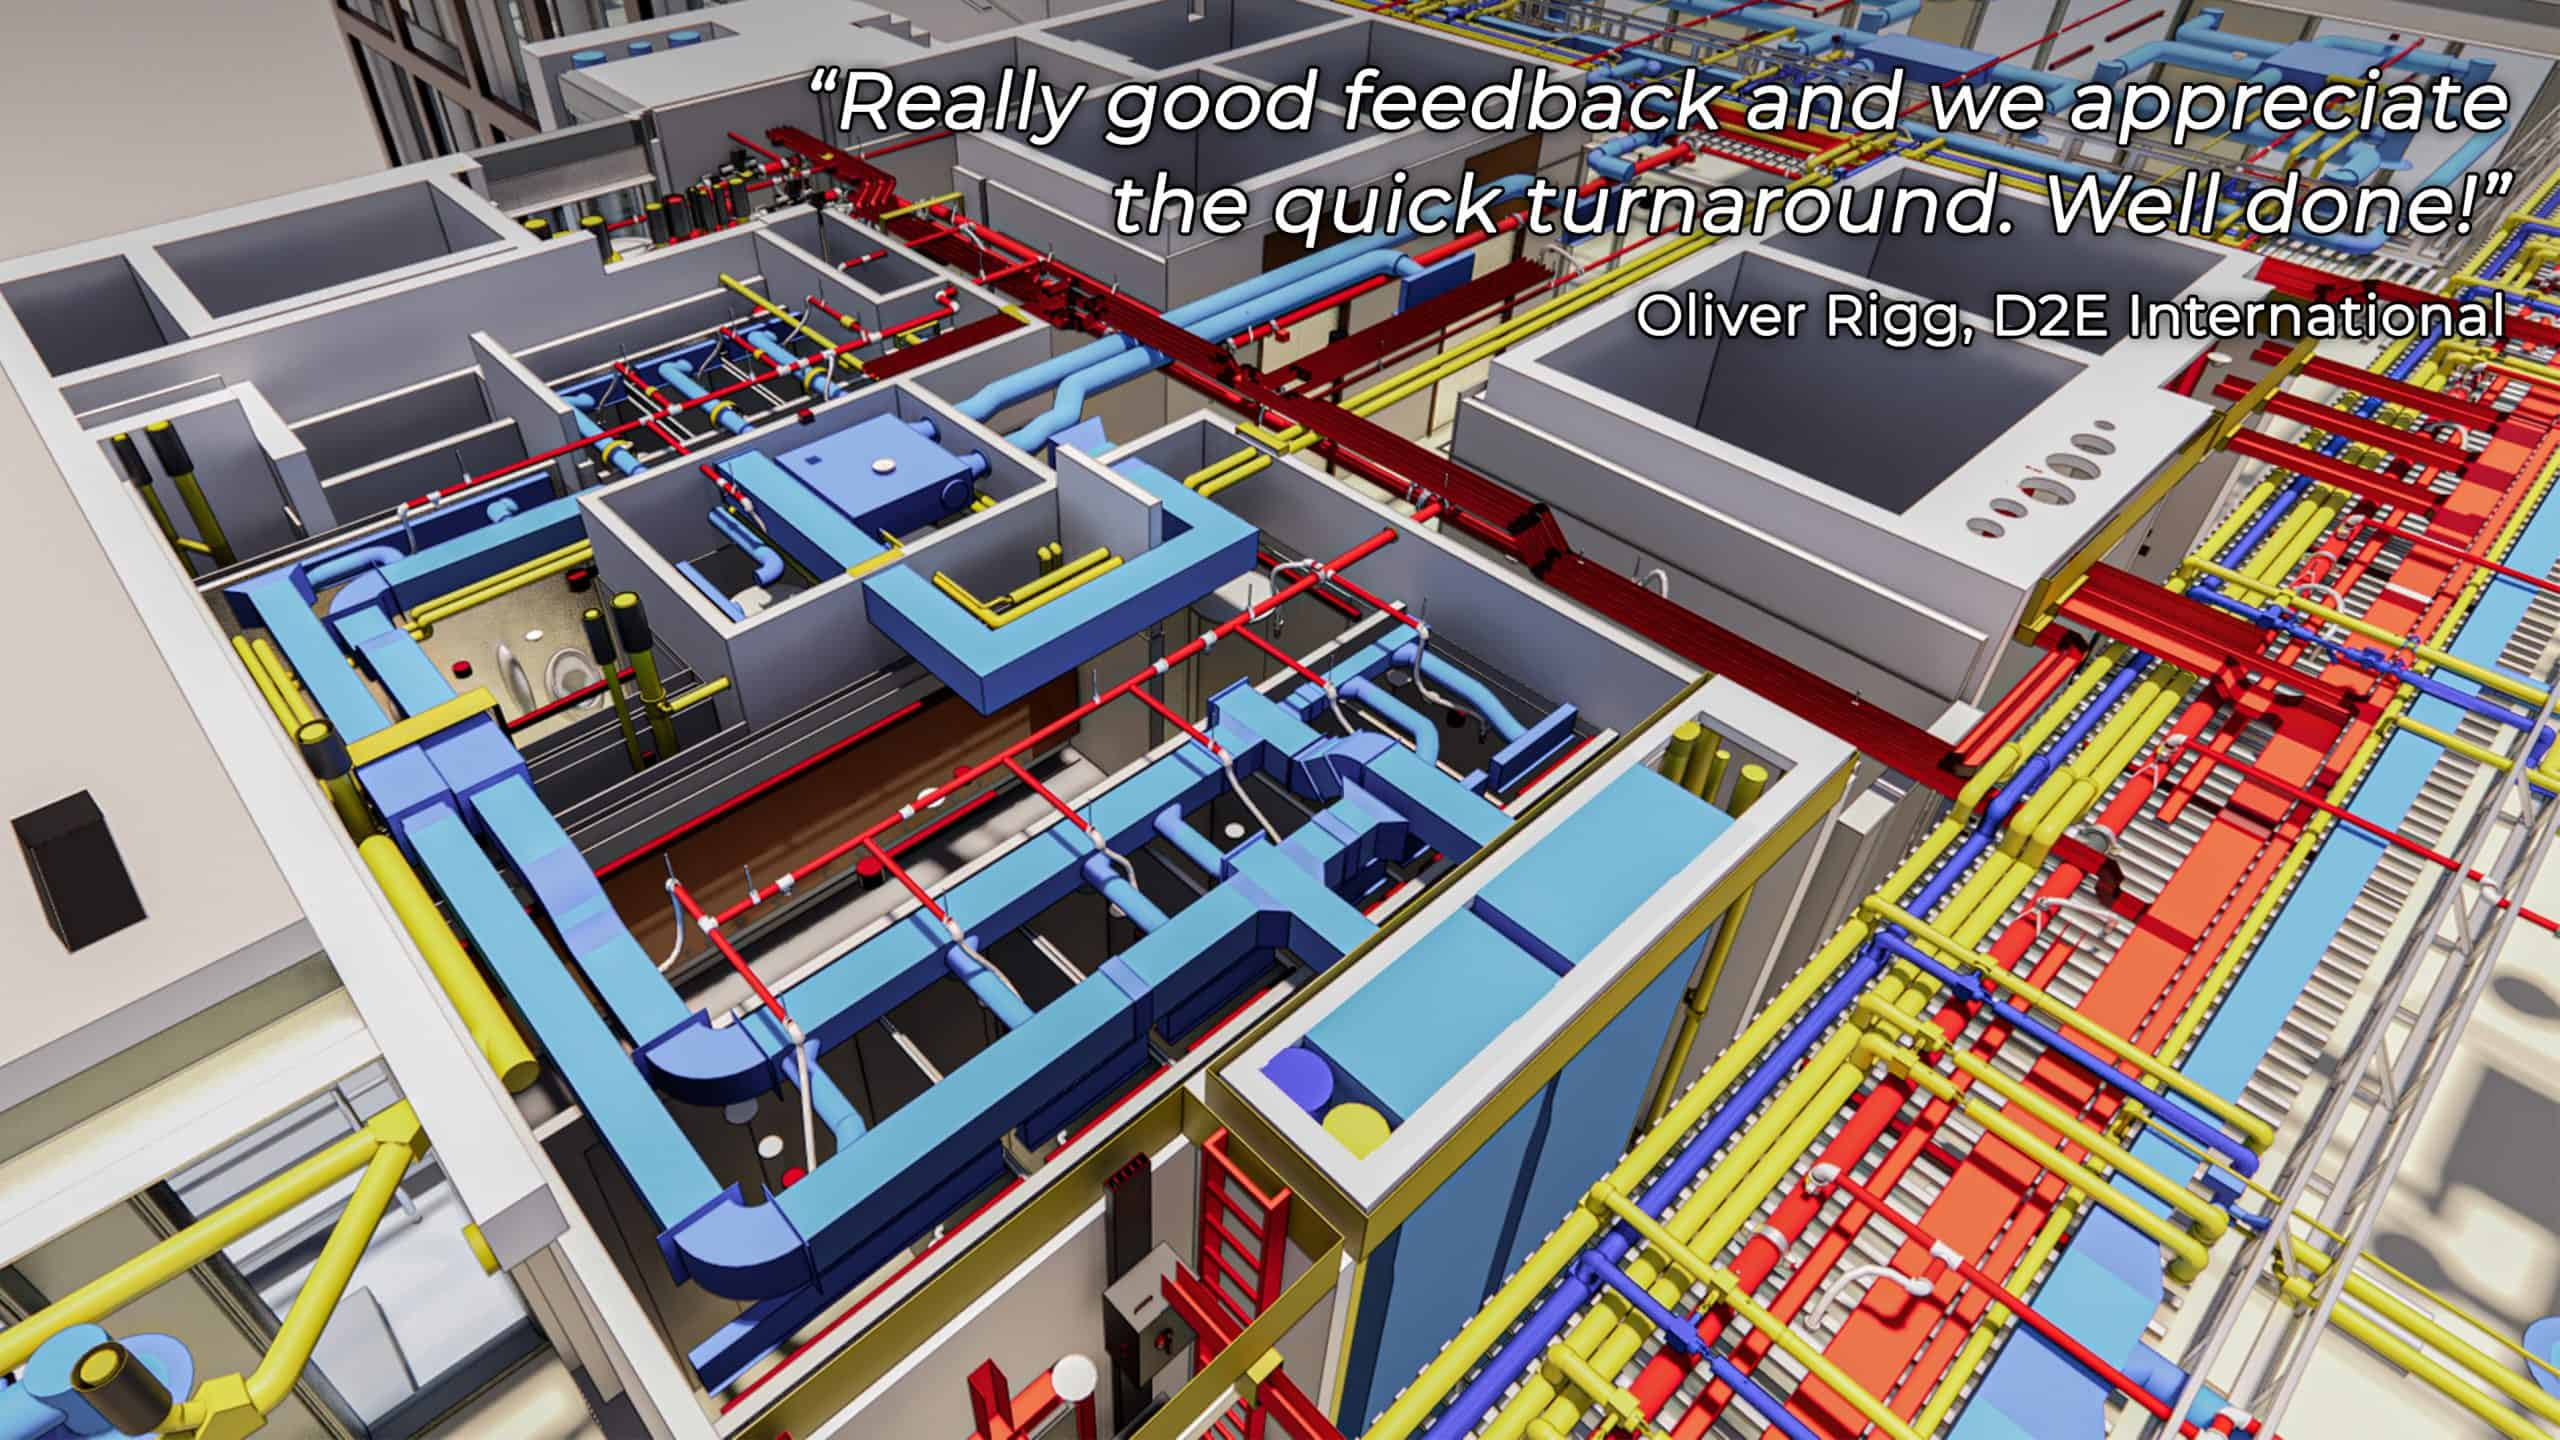 """BIM model with quote: """"Really good feedback and we appreciate the quick turnaround. Well done!"""" Oliver Rigg, D2E International"""